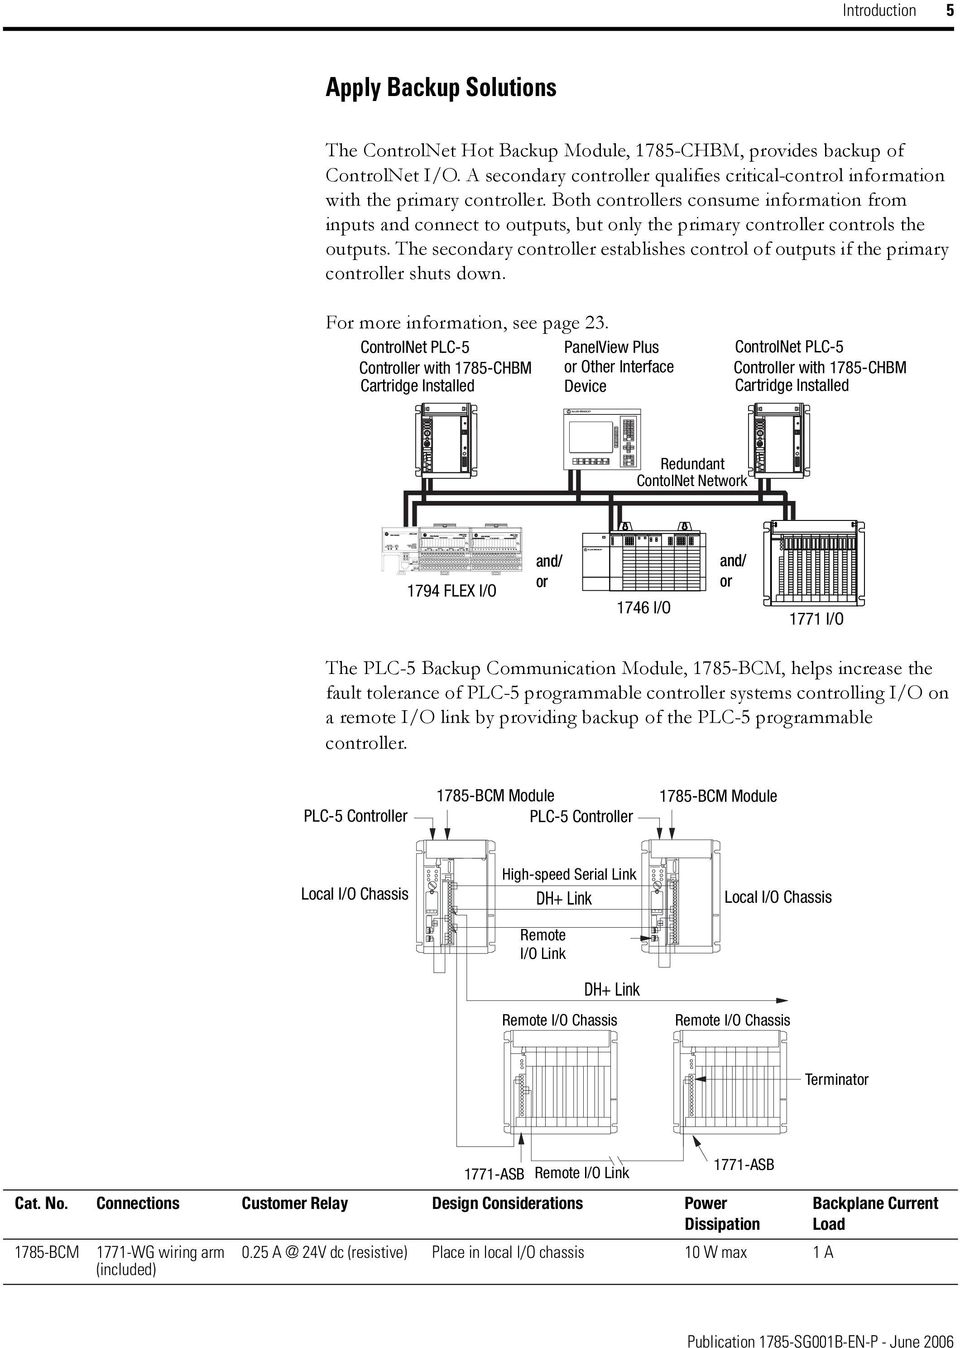 Plc 5 Programmable Controllers Selection Guide 1785 And Pdf Wiring Diagrams Both Consume Information From Inputs Connect To Outputs But Only The Primary Controller